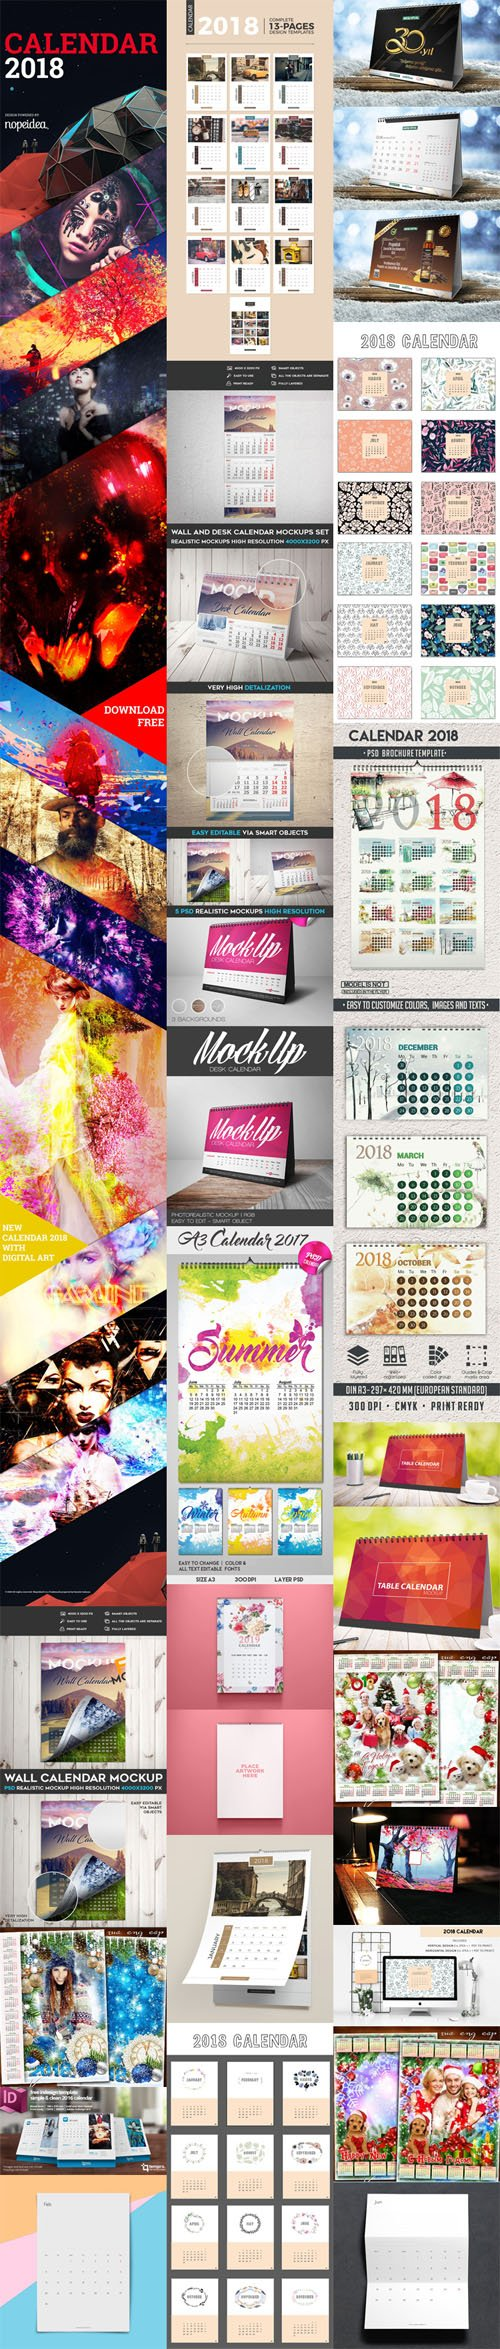 Calendar Templates & Mockups Collection [PSD/Ai/Indd/PDF]